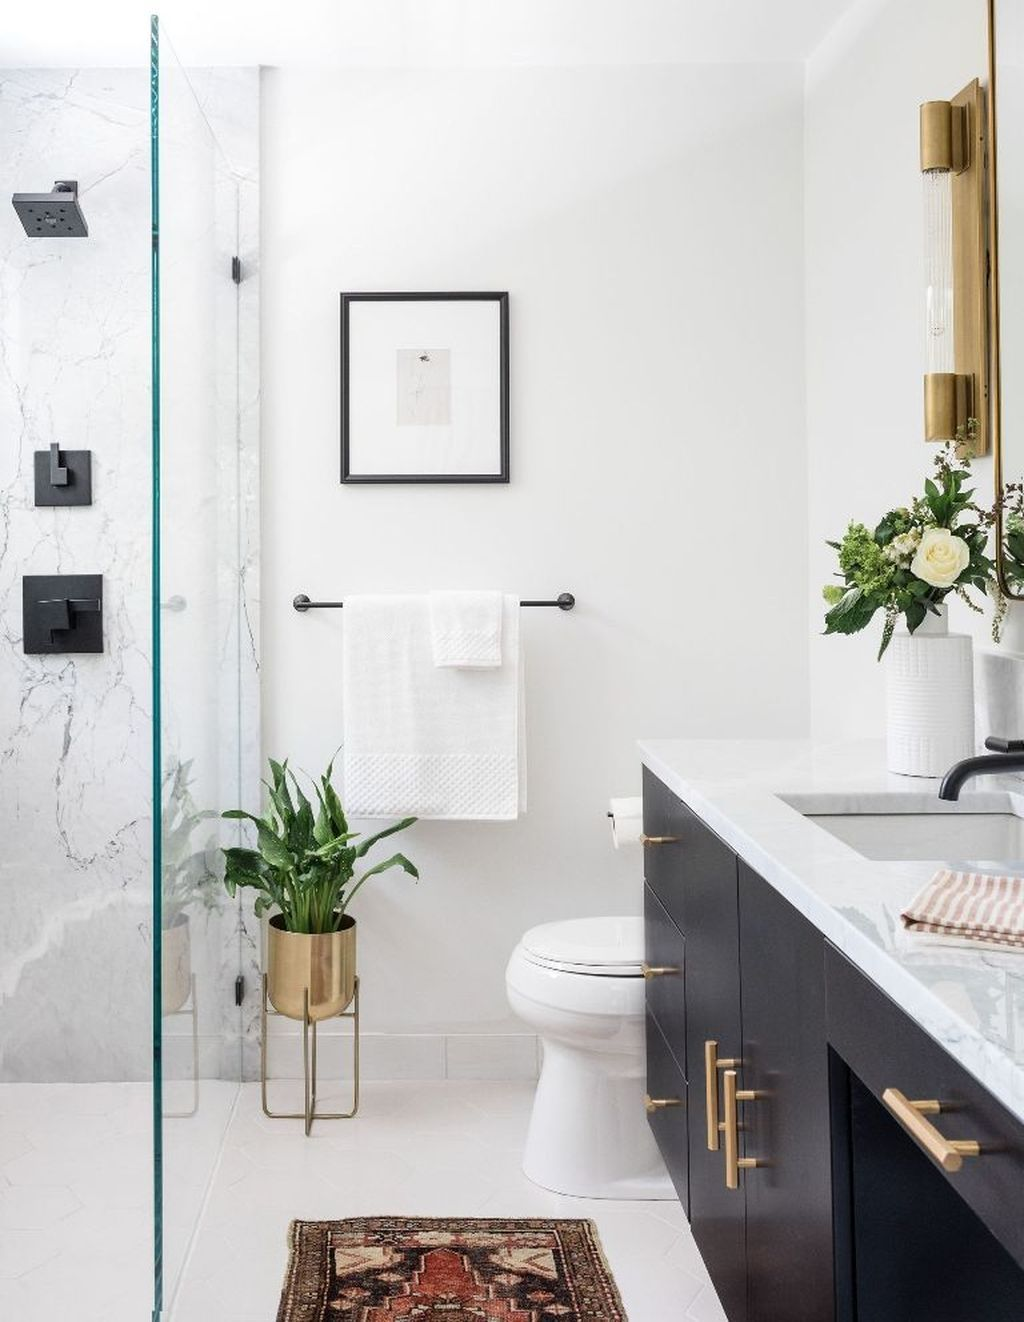 41 Captivating Small Master Bathroom Ideas images